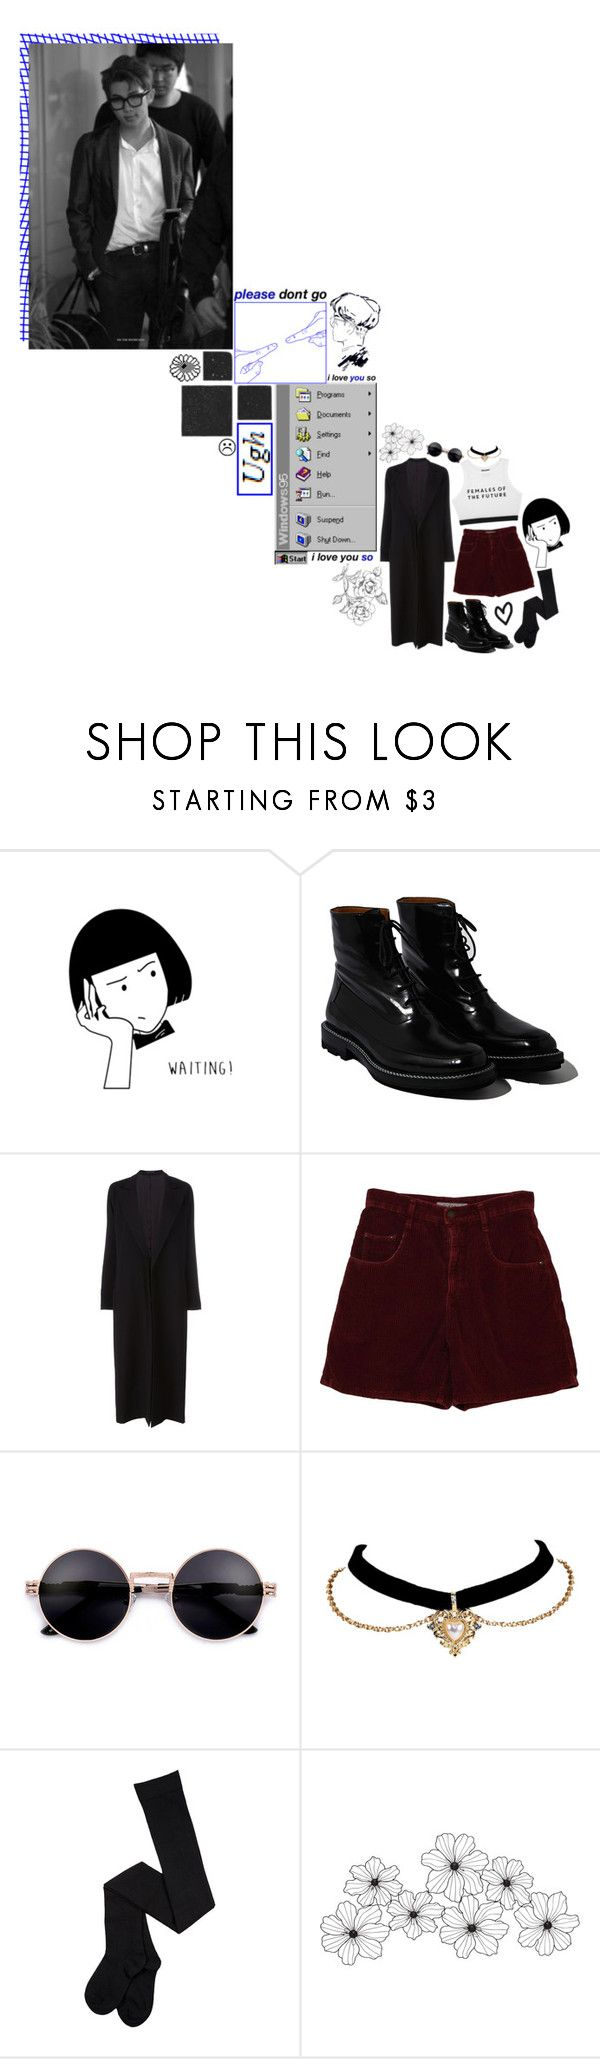 """WHERE DID WE GO WRONG?"" by johnuhope ❤ liked on Polyvore featuring Jil Sander, Yohji Yamamoto, WALL, kpop, bts, bangtan, rapmonster and Namjoon"